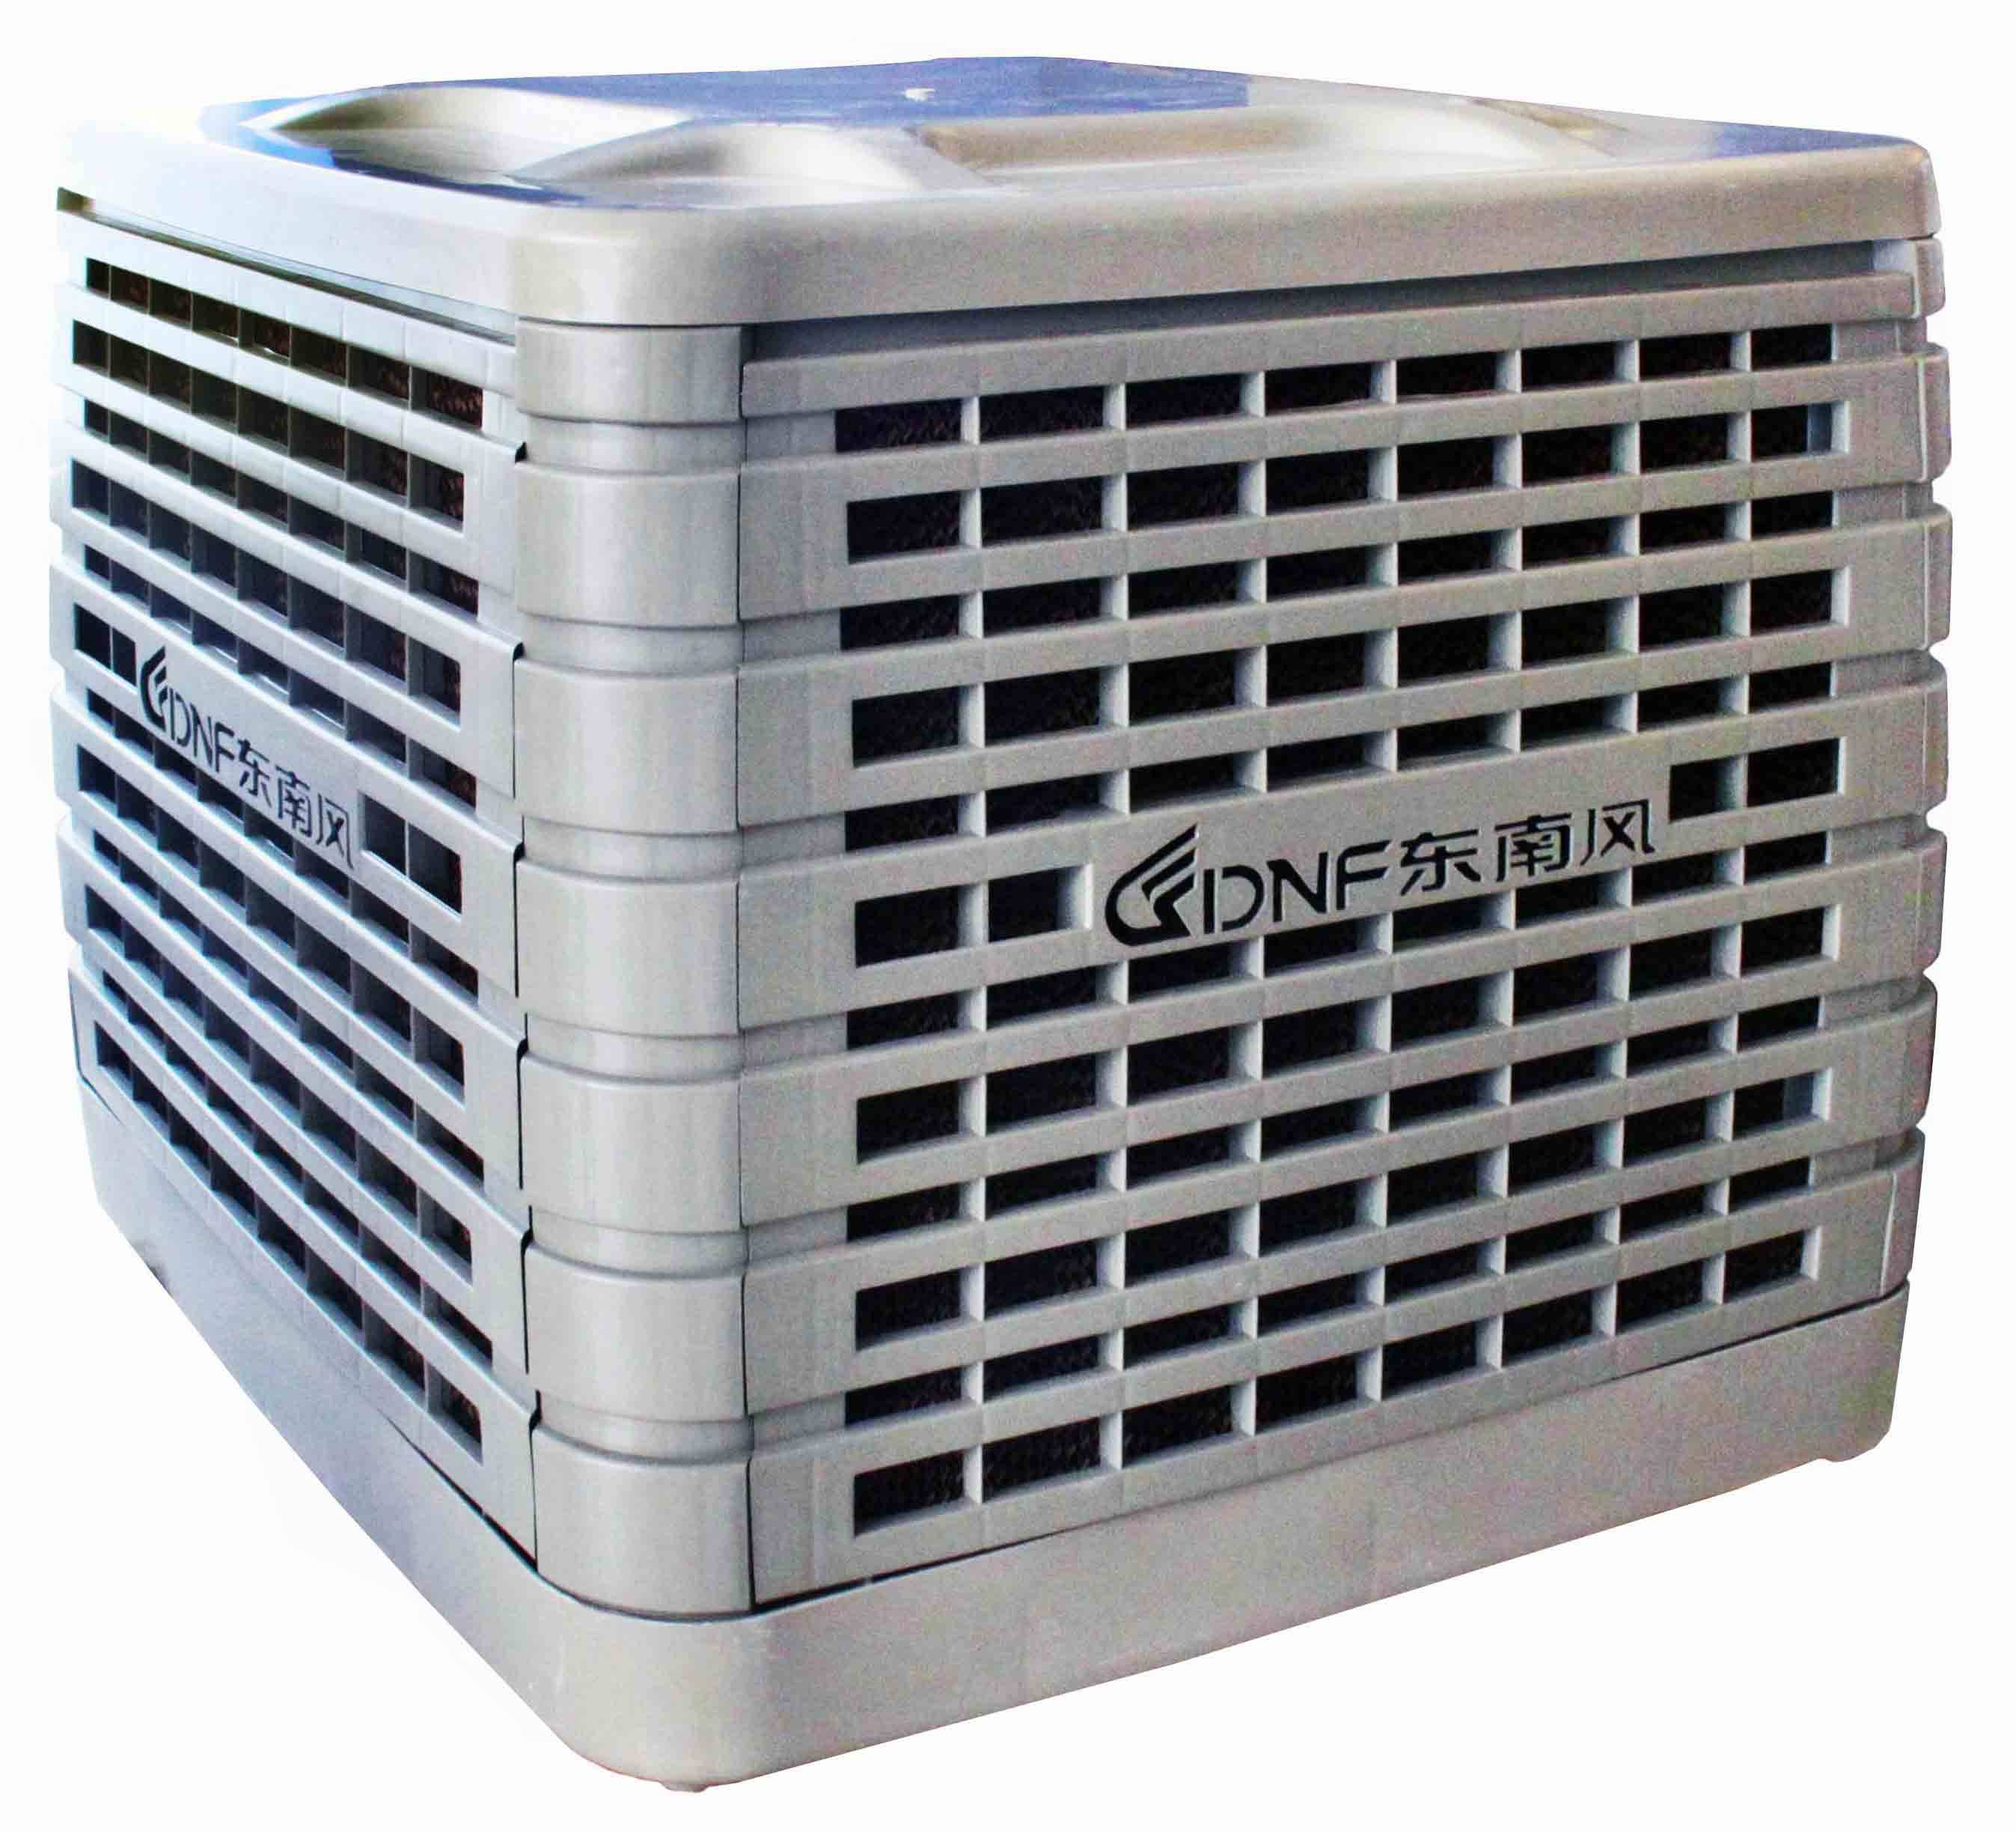 Air cooler Environmental products DNF Branded